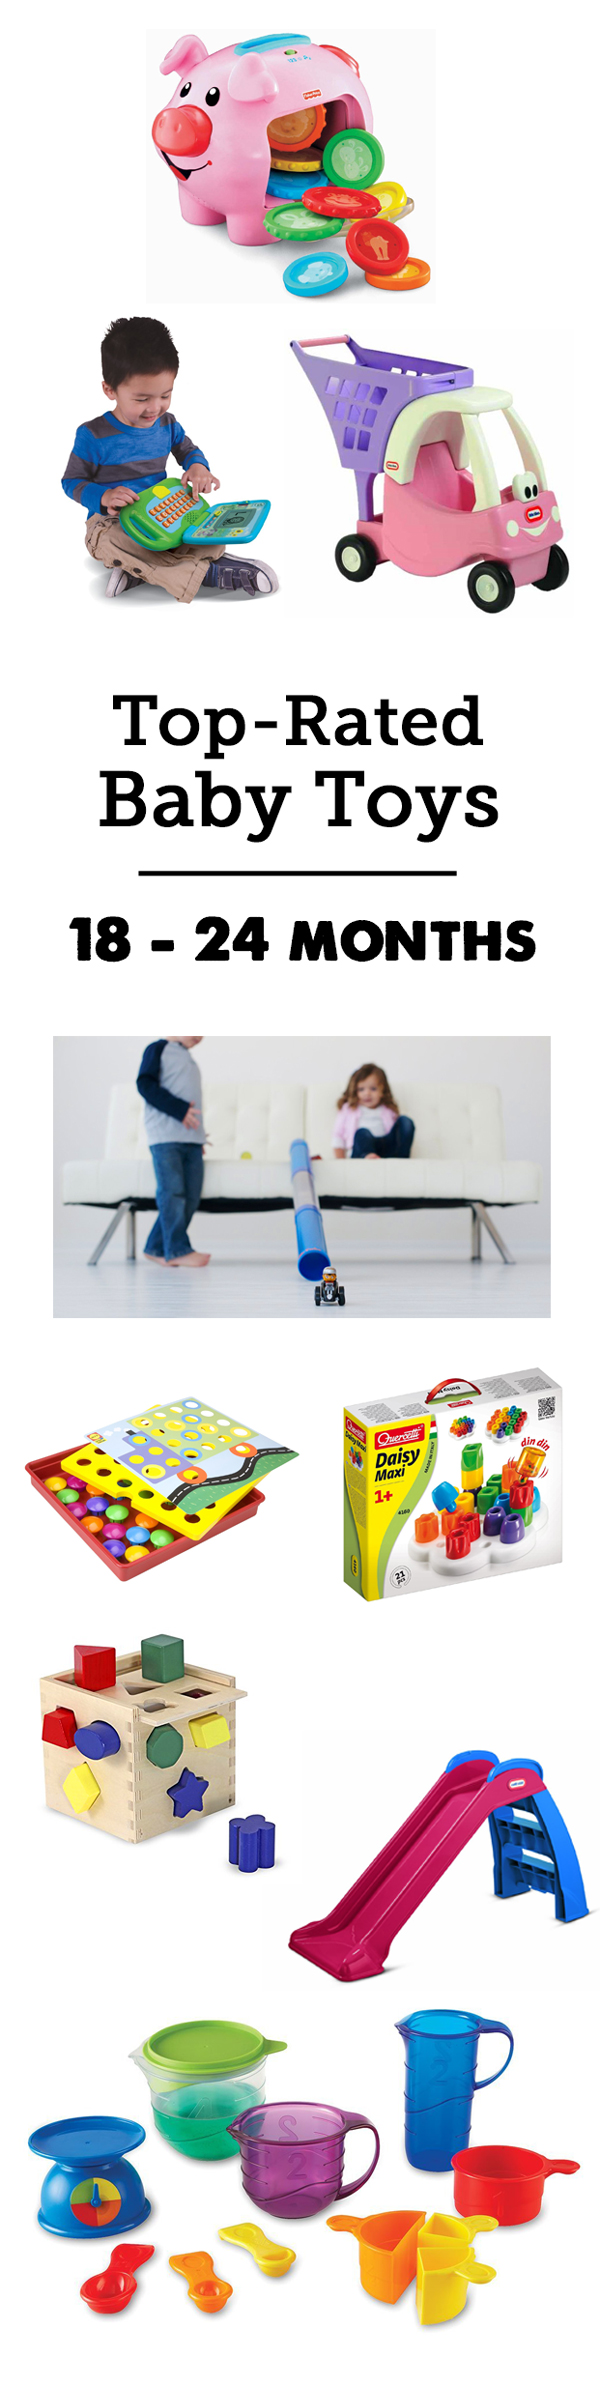 Baby Toys 18 24 Months : Mpmk gift guide best toys for babies young toddlers